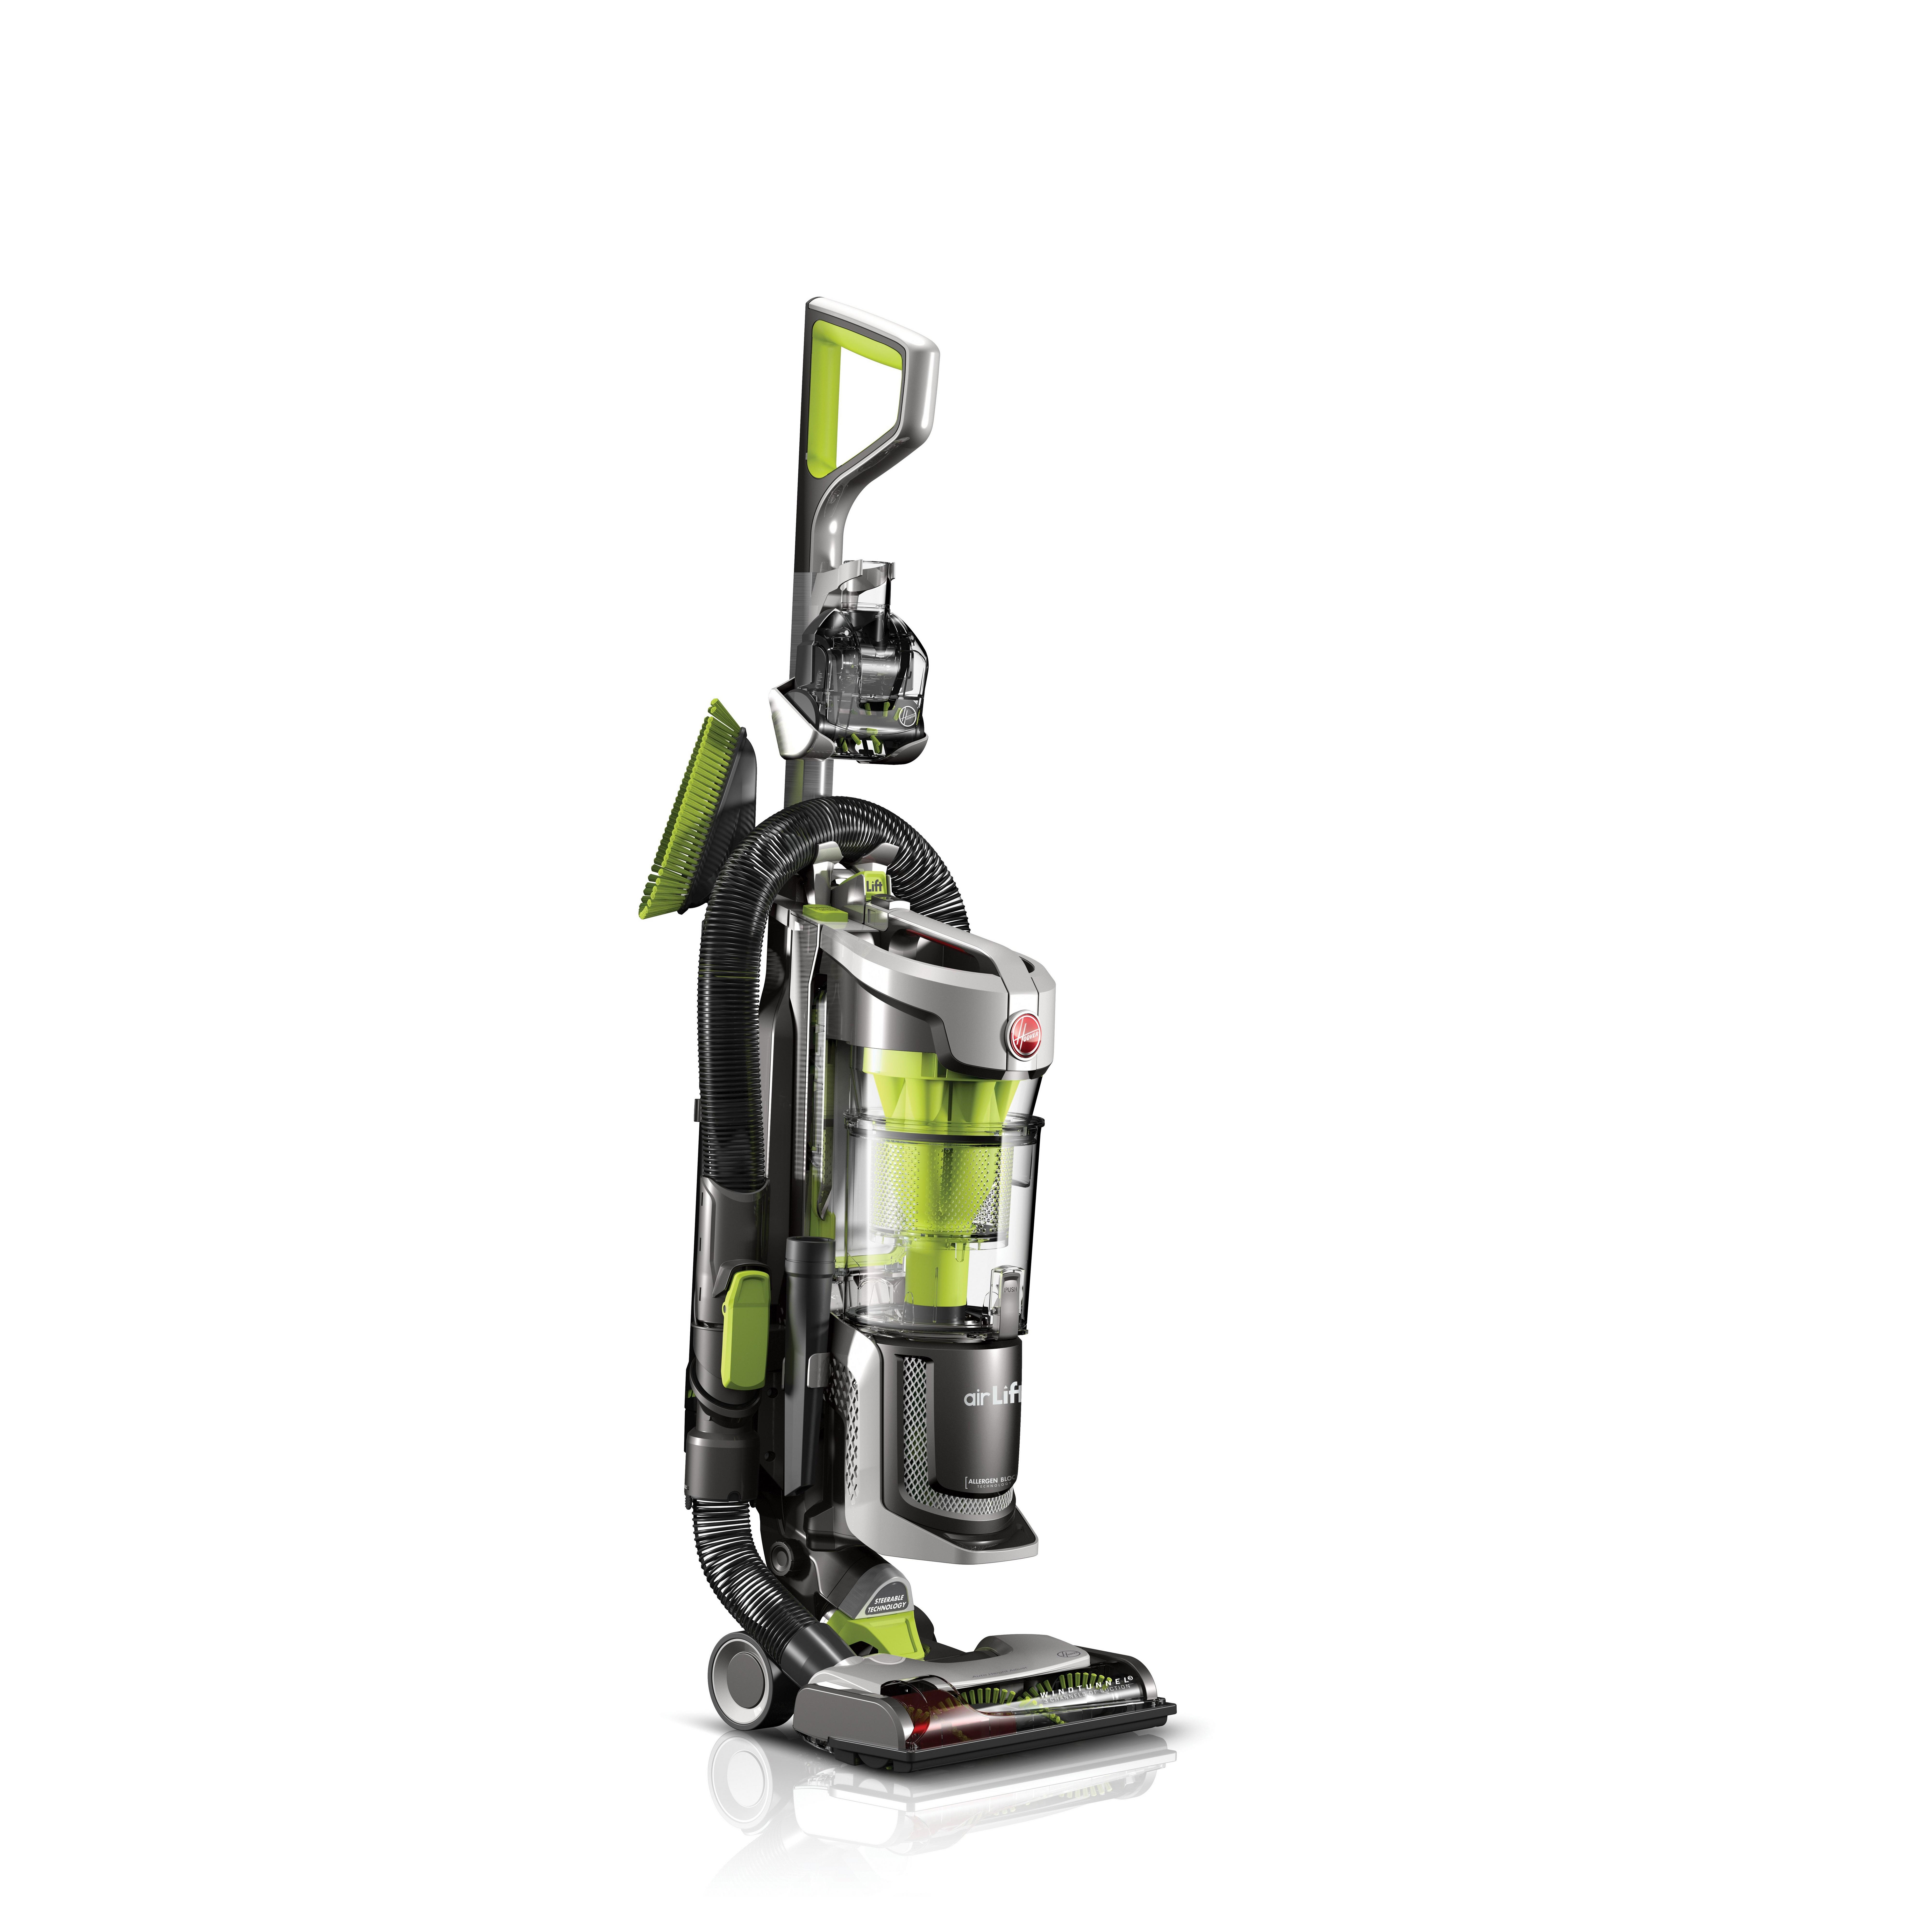 Hoover Air Cleaners : Hoover air lift deluxe bagless upright vacuum cleaner